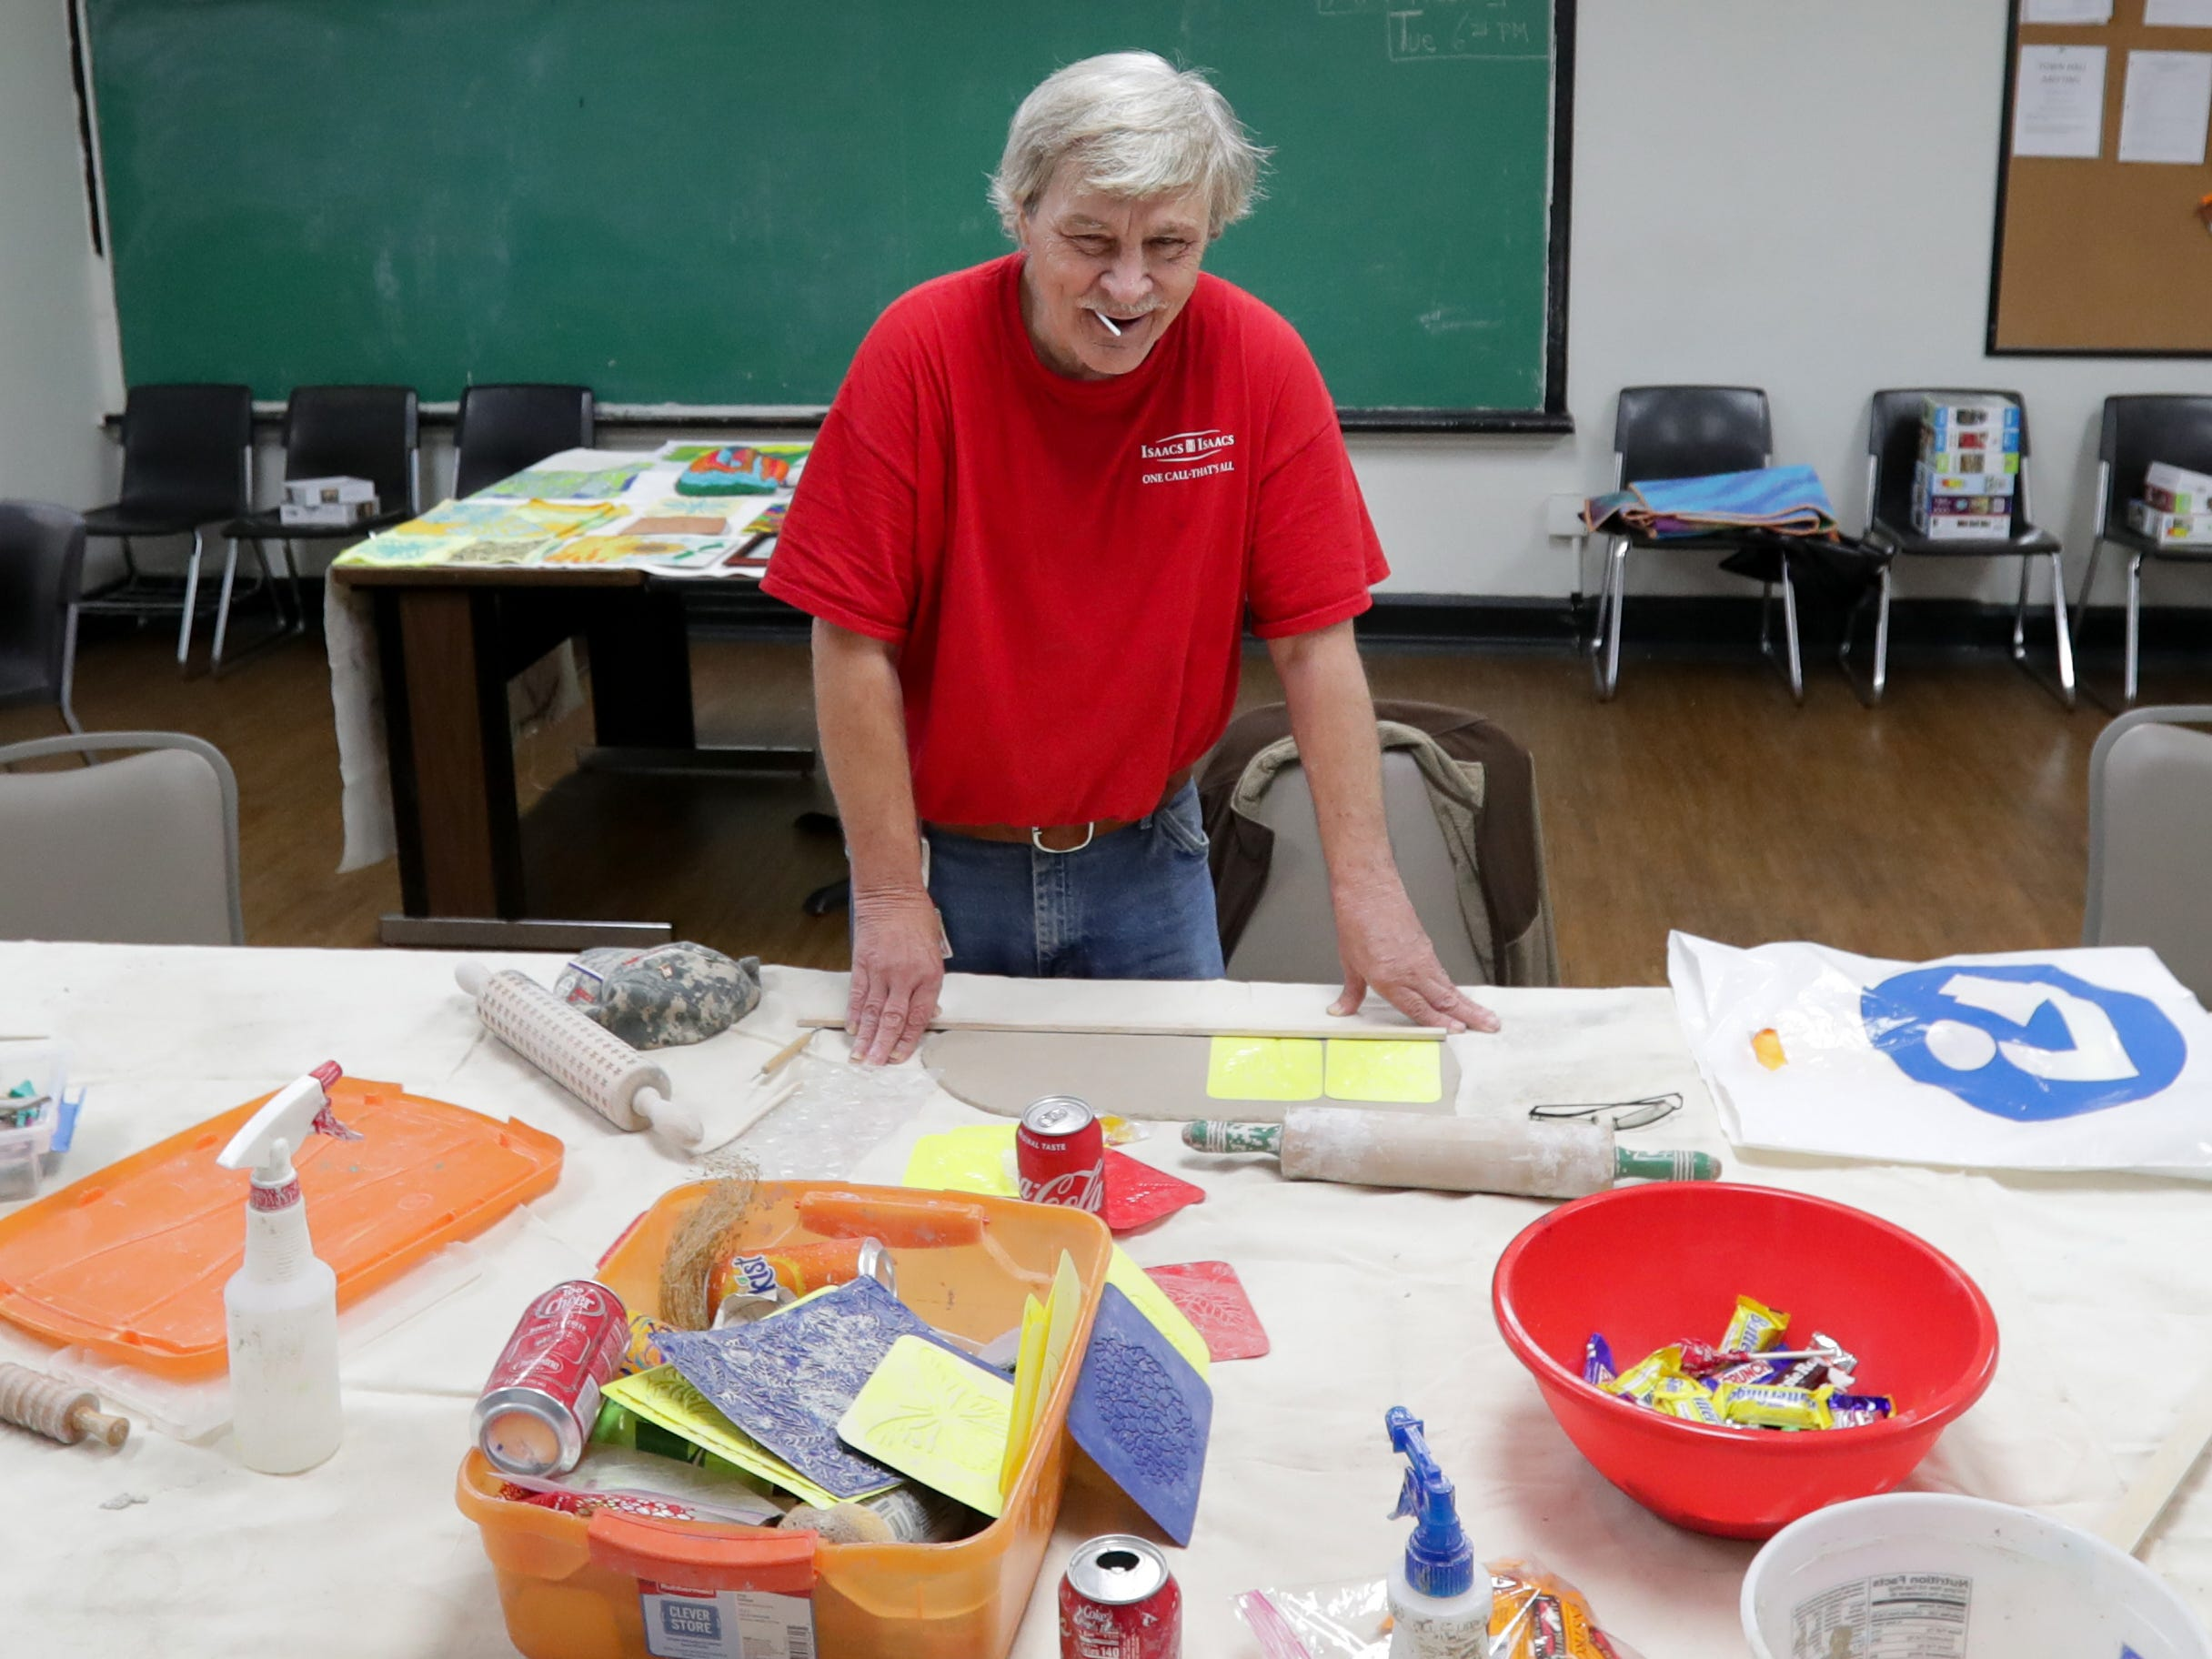 """James """"Jimbo"""" Fredrick is part of the Kentucky Center for the Arts program called Arts in Healing. The program hires artists to help people, like vets, who have gone through traumatic experiences.Nov. 1, 208"""